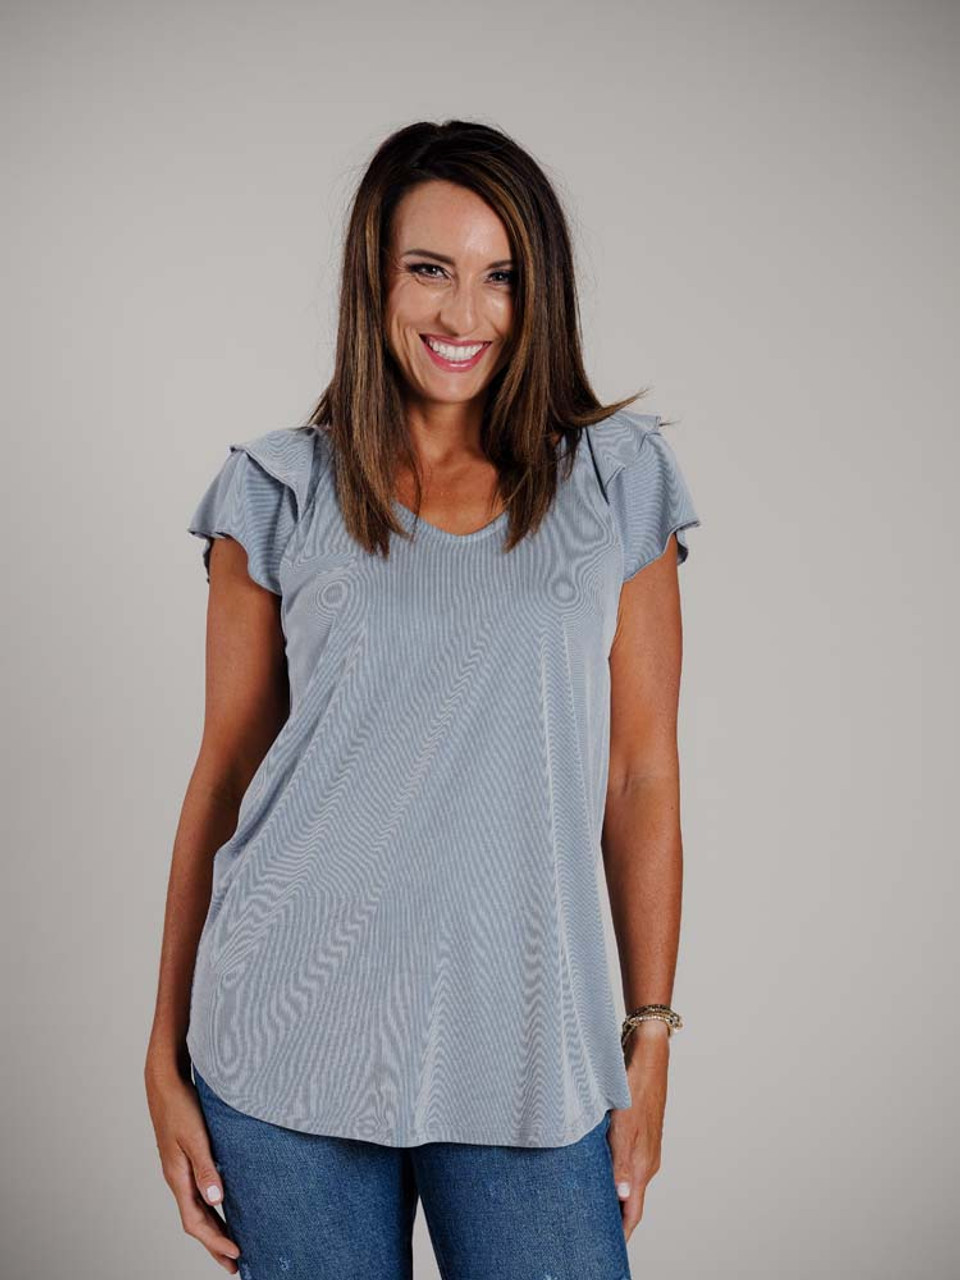 Greyish/white and denim blue micro stripe v-neck tunic top with double butterfly short sleeves